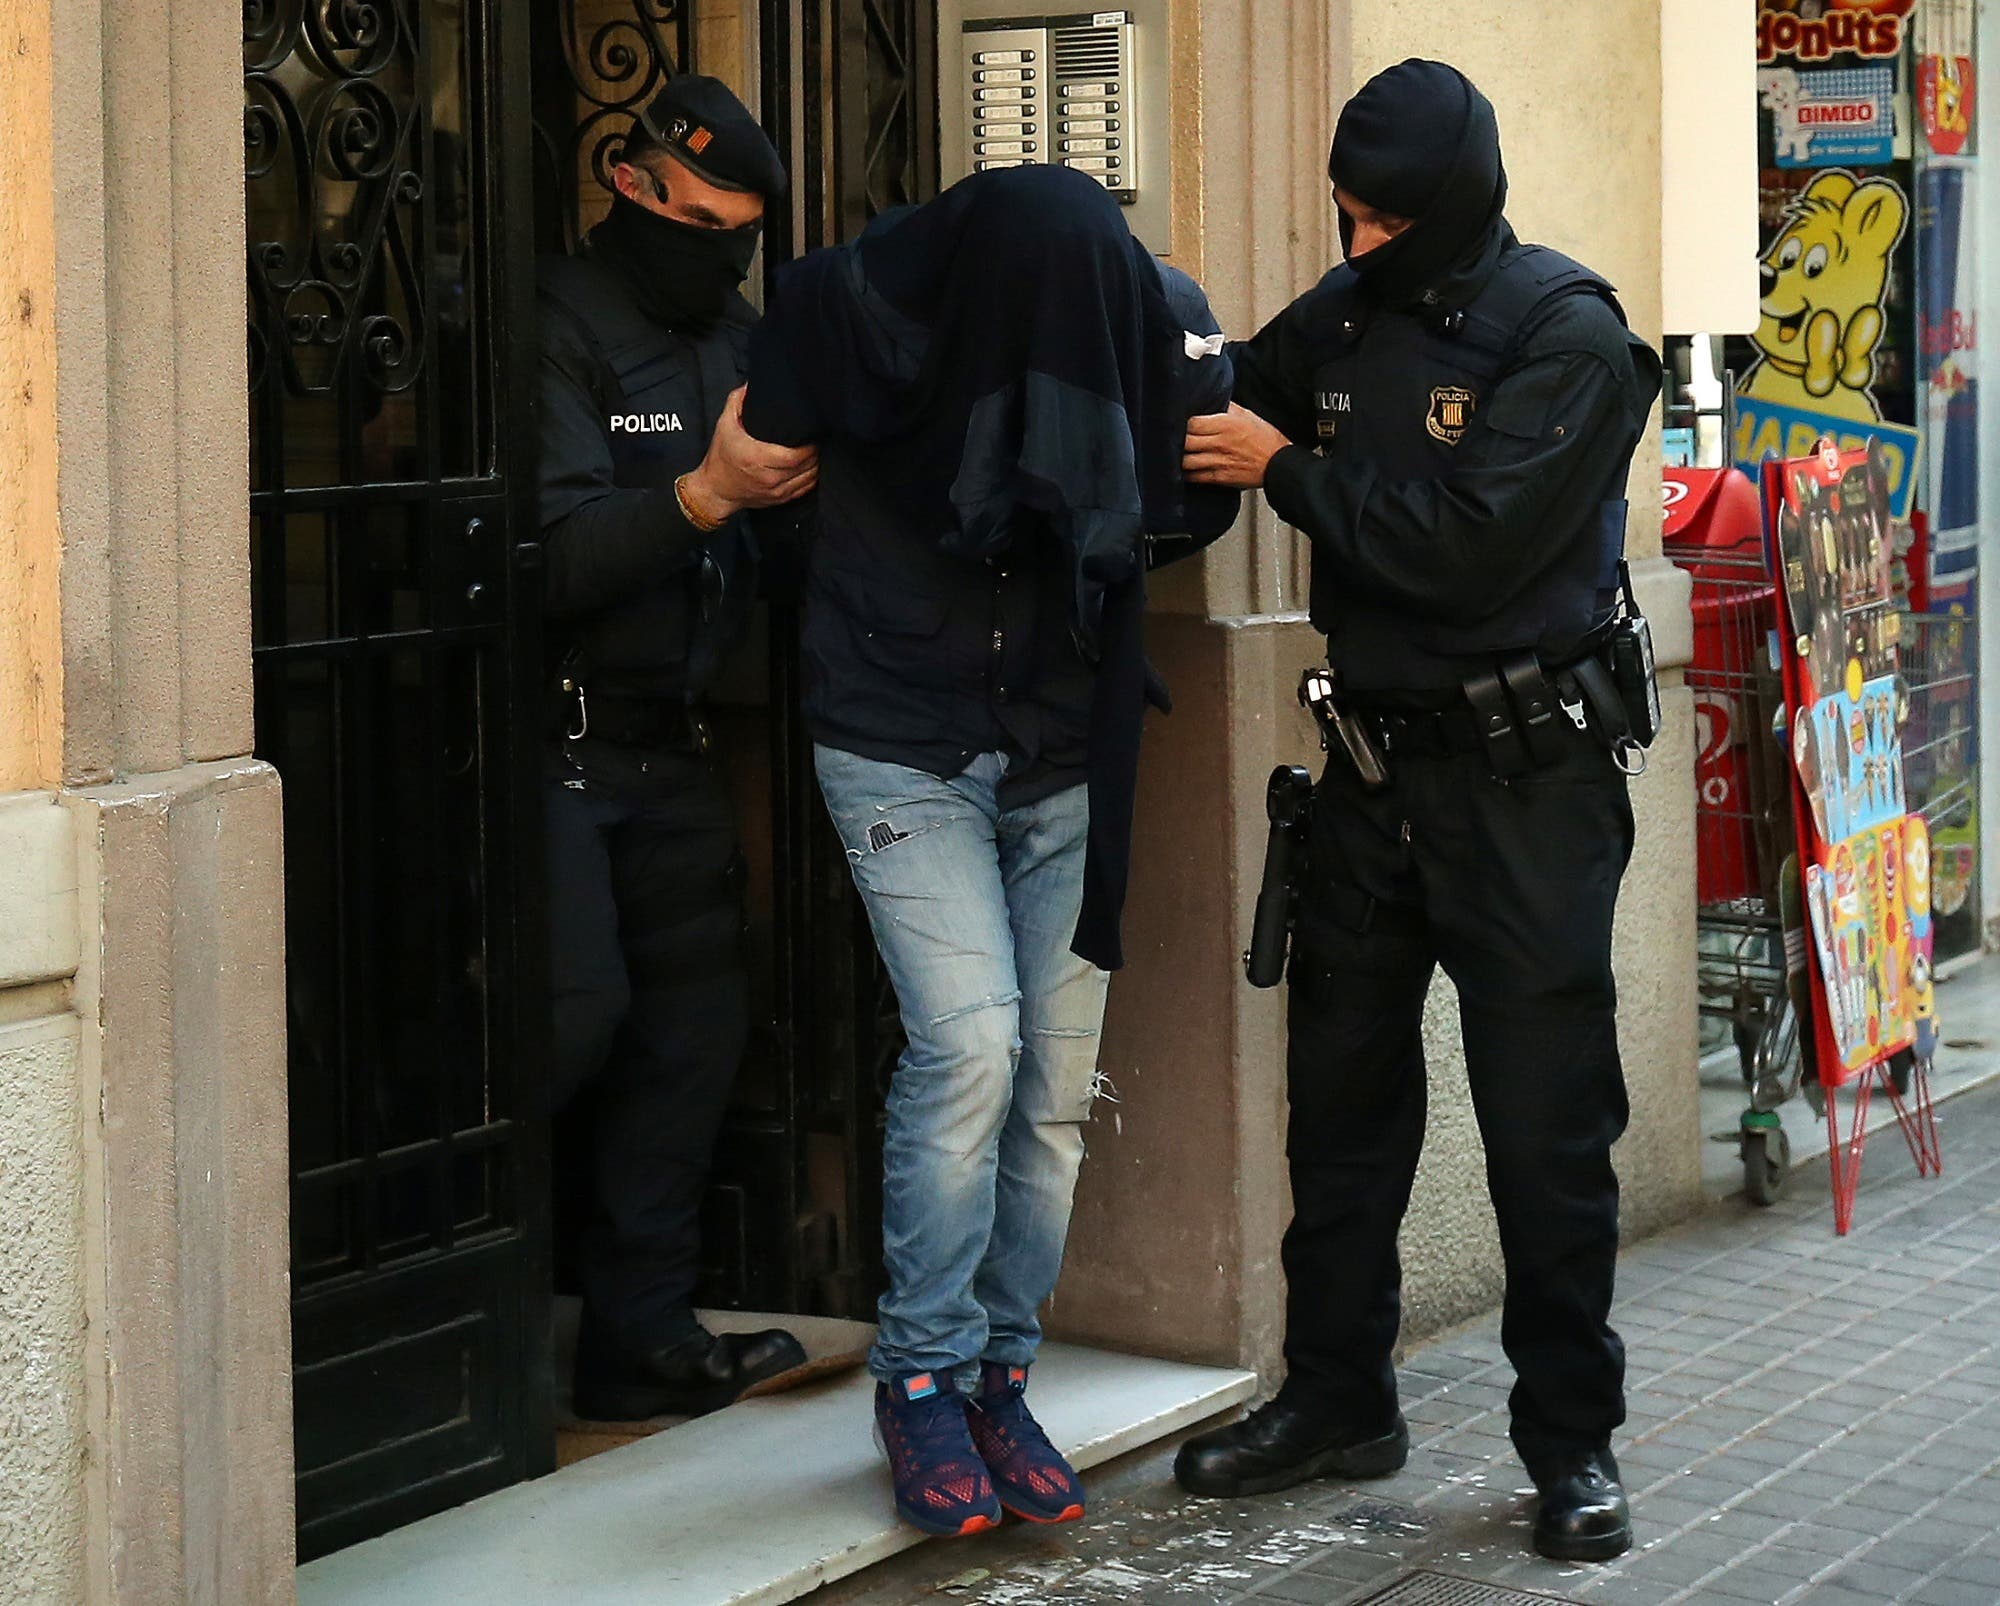 Sweeping operation against extremist militants in which eight people were arrested in Spain. (Reuters)